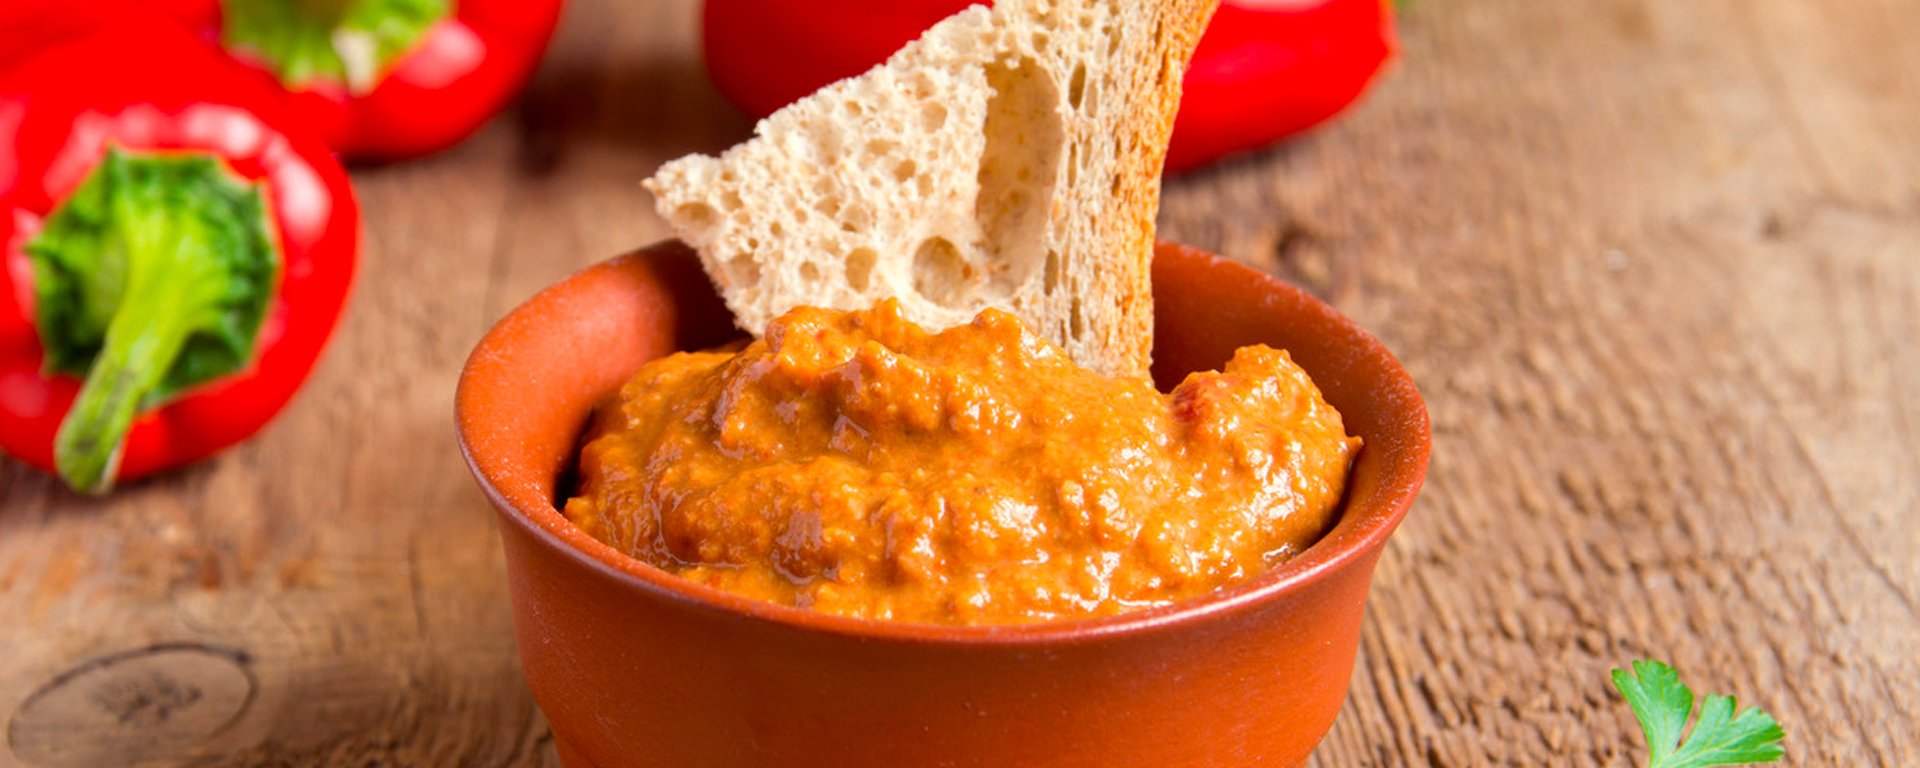 Photo for - Roasted Red Pepper Dip